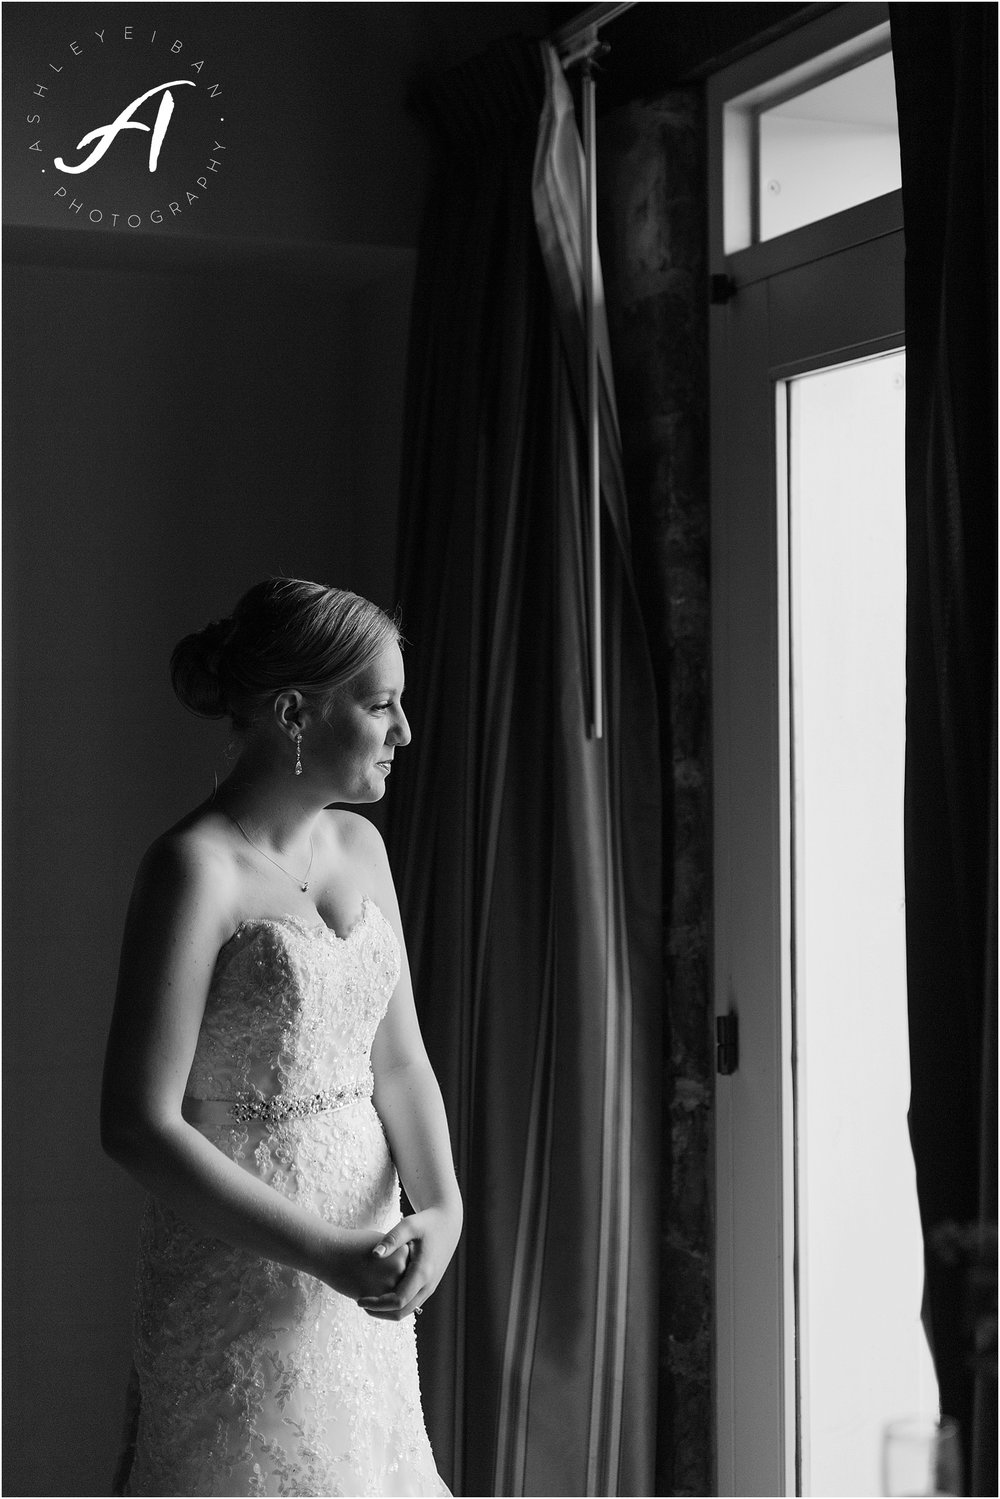 Craddock Terry Wedding in Downtown Lynchburg || Charlottesville Wedding Photographer || www.ashleyeiban.com